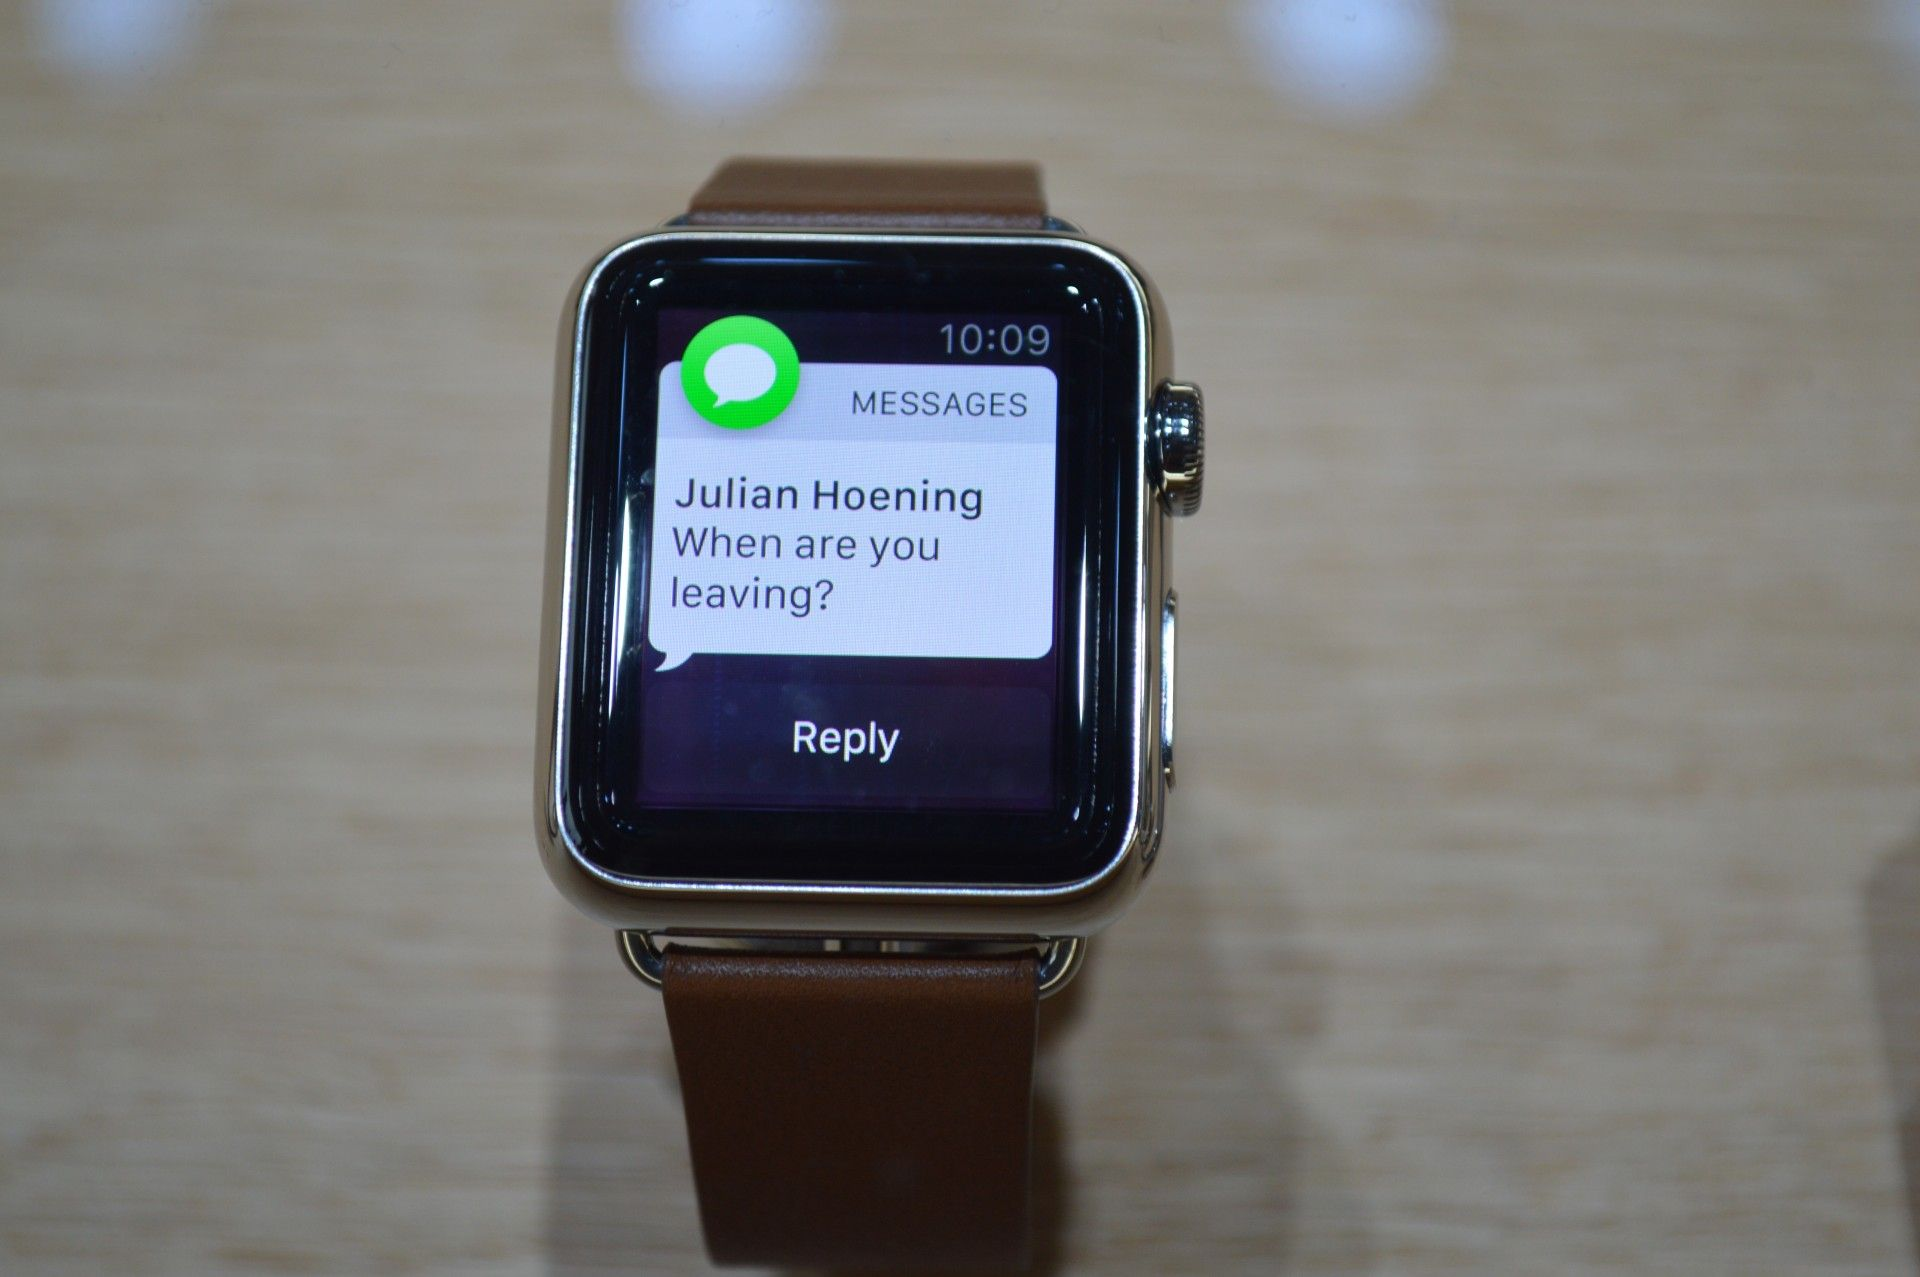 Not quite handson with the Apple Watch, and the questions